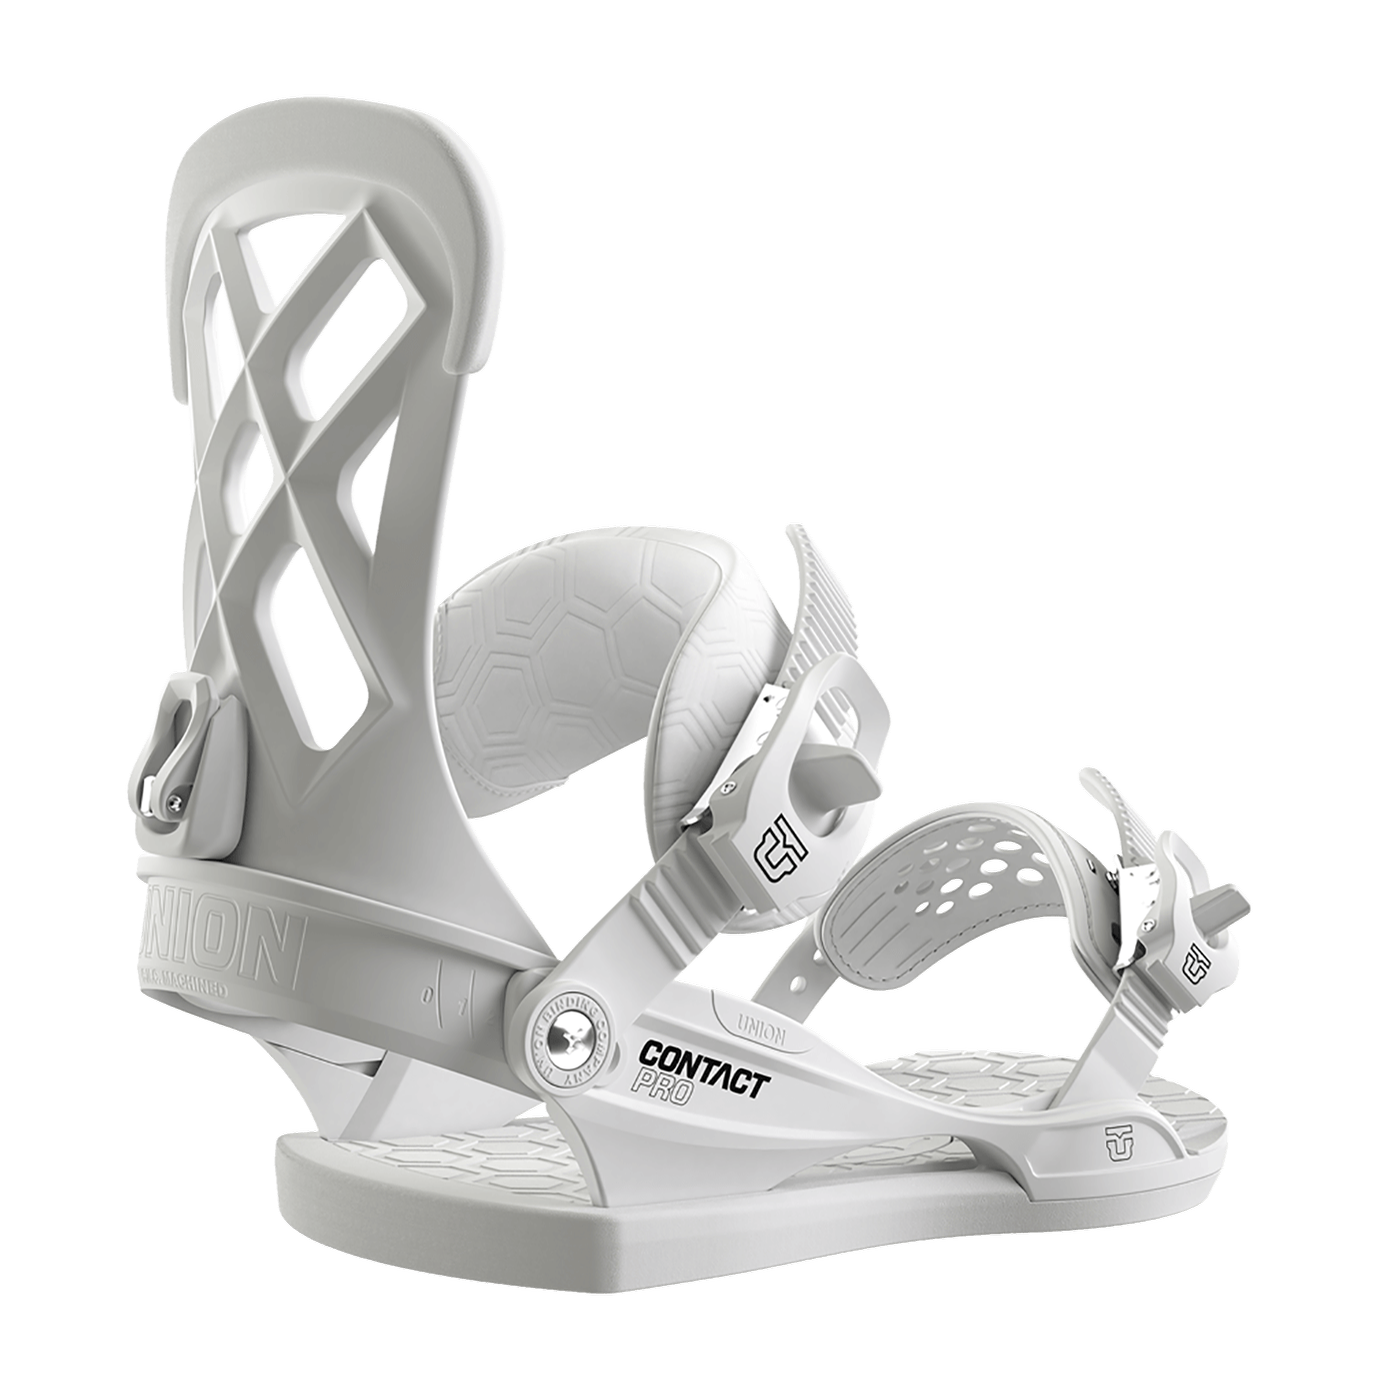 UNION Contact Pro Binding (White)